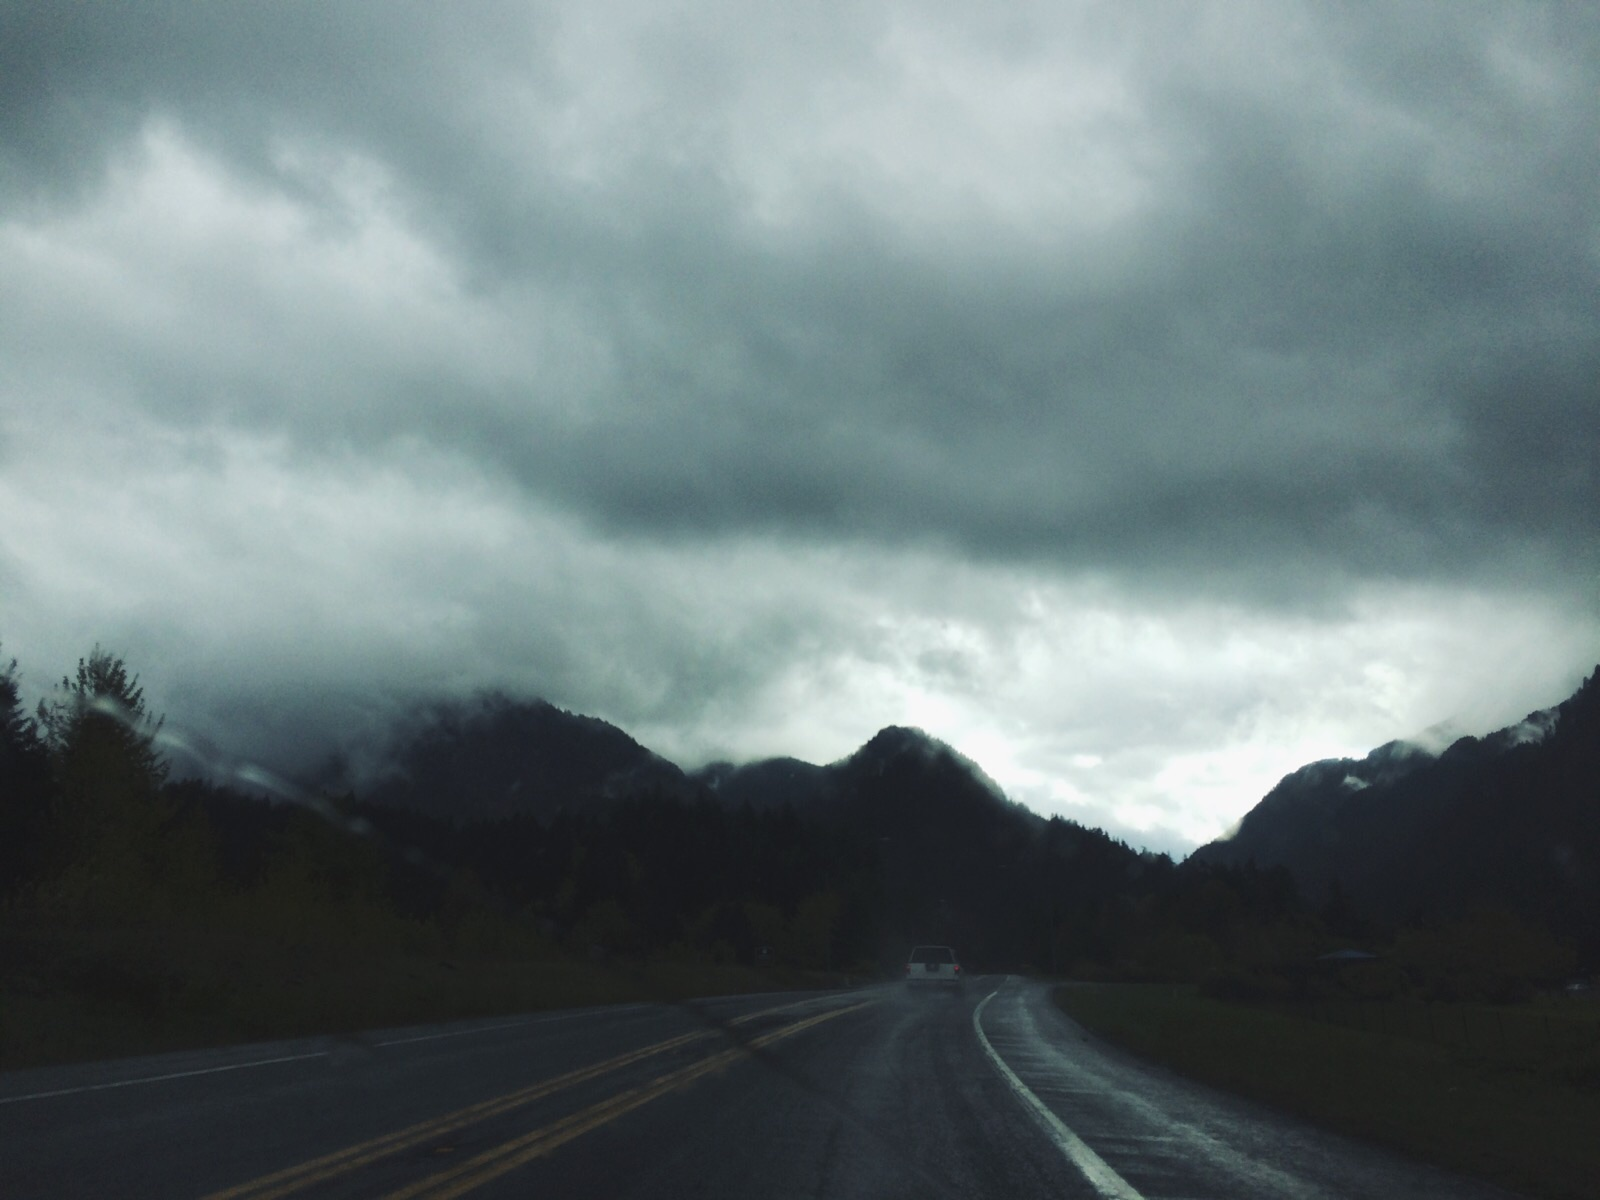 Driving to Stevenson on a beautiful, stormy morning